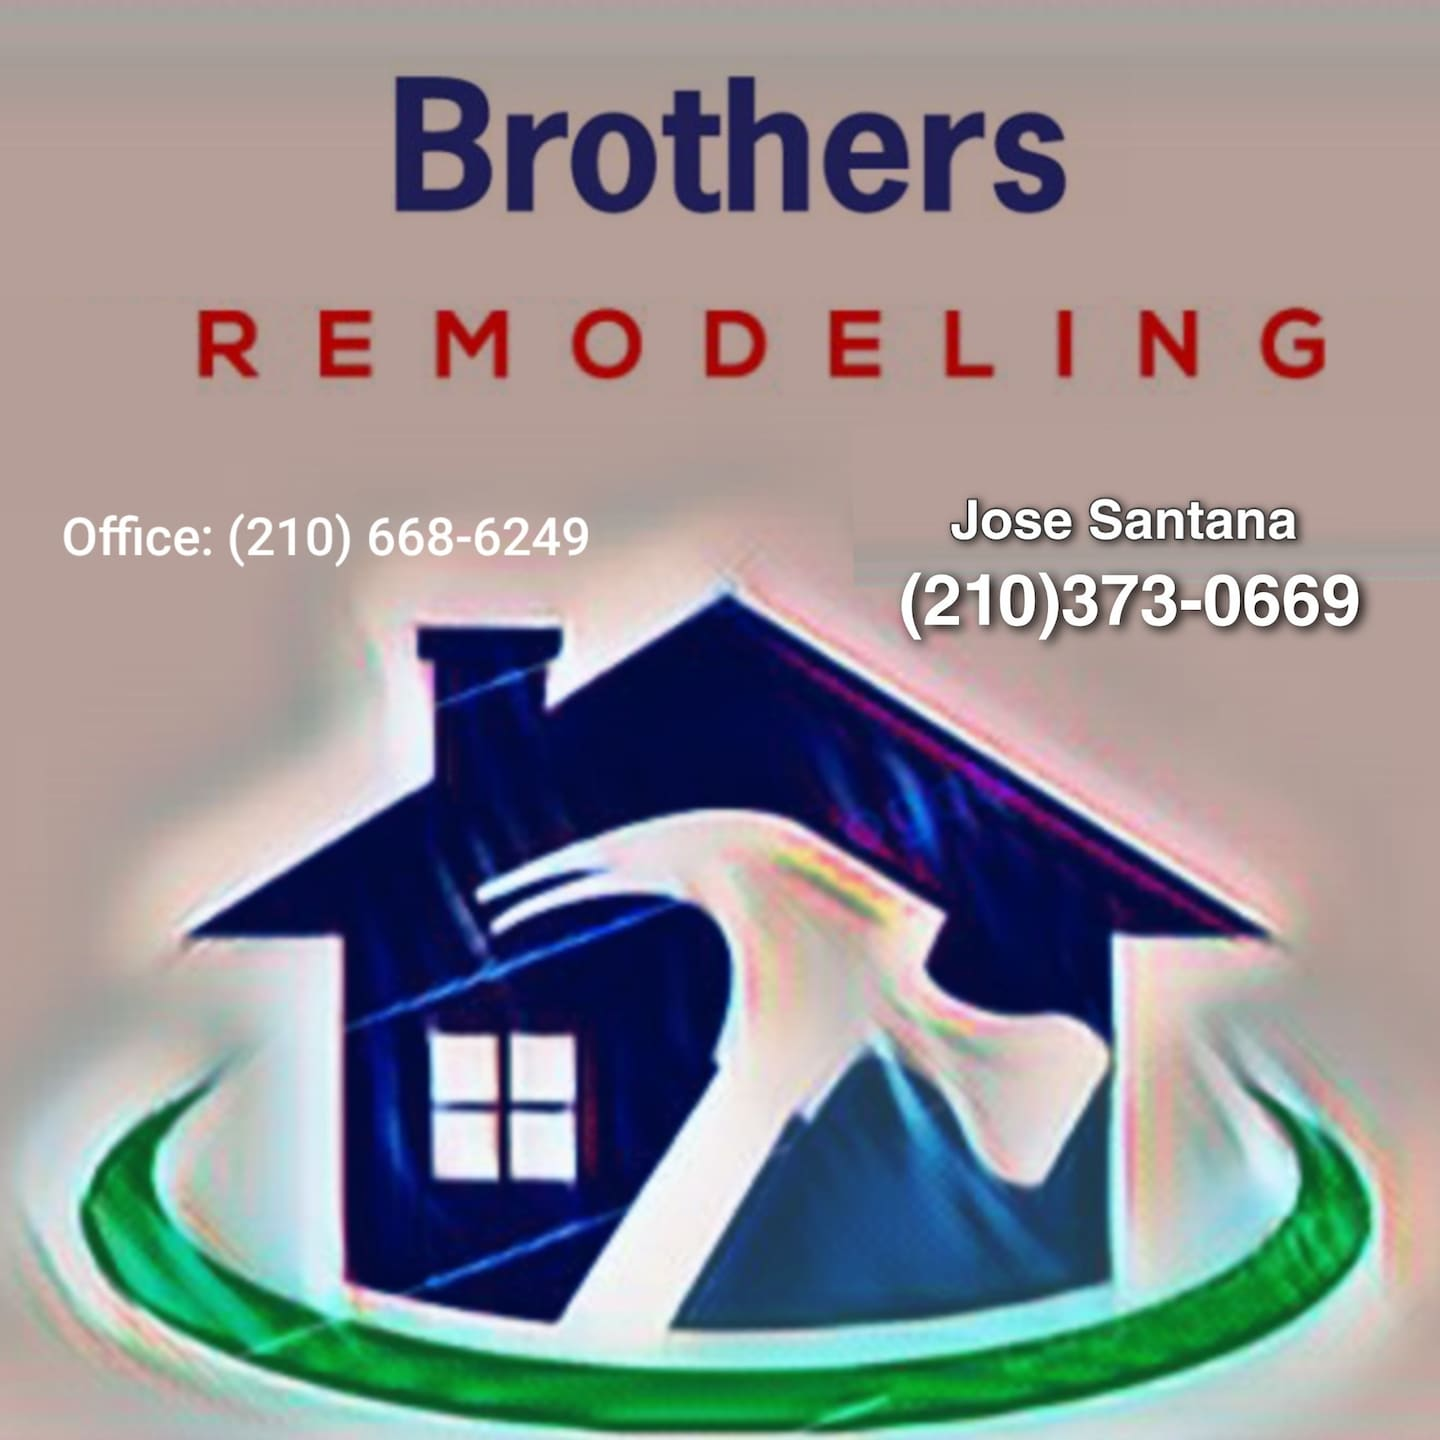 Brother's Remodeling